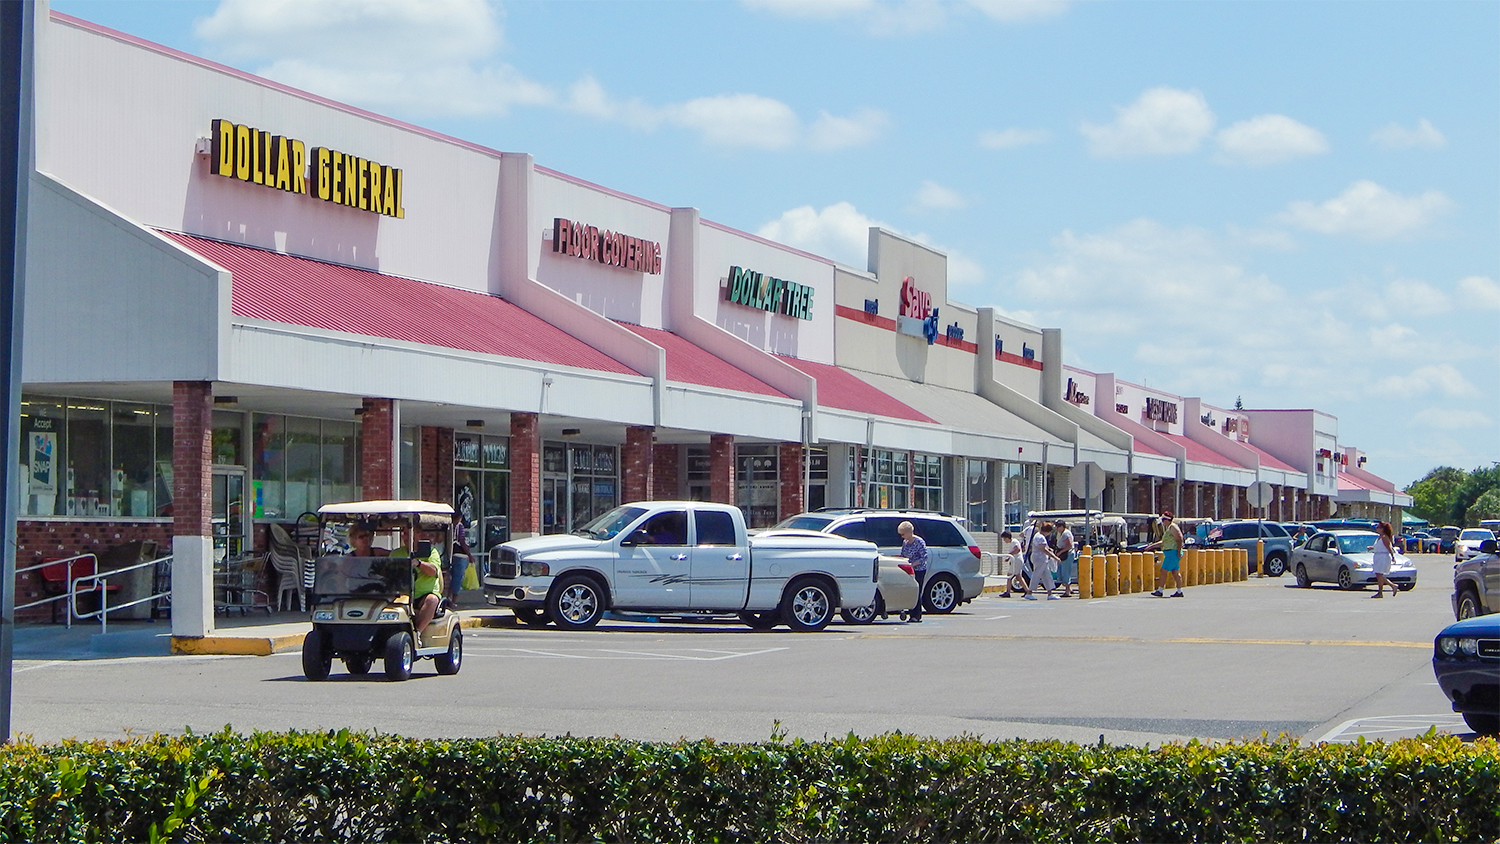 general steel strip mall